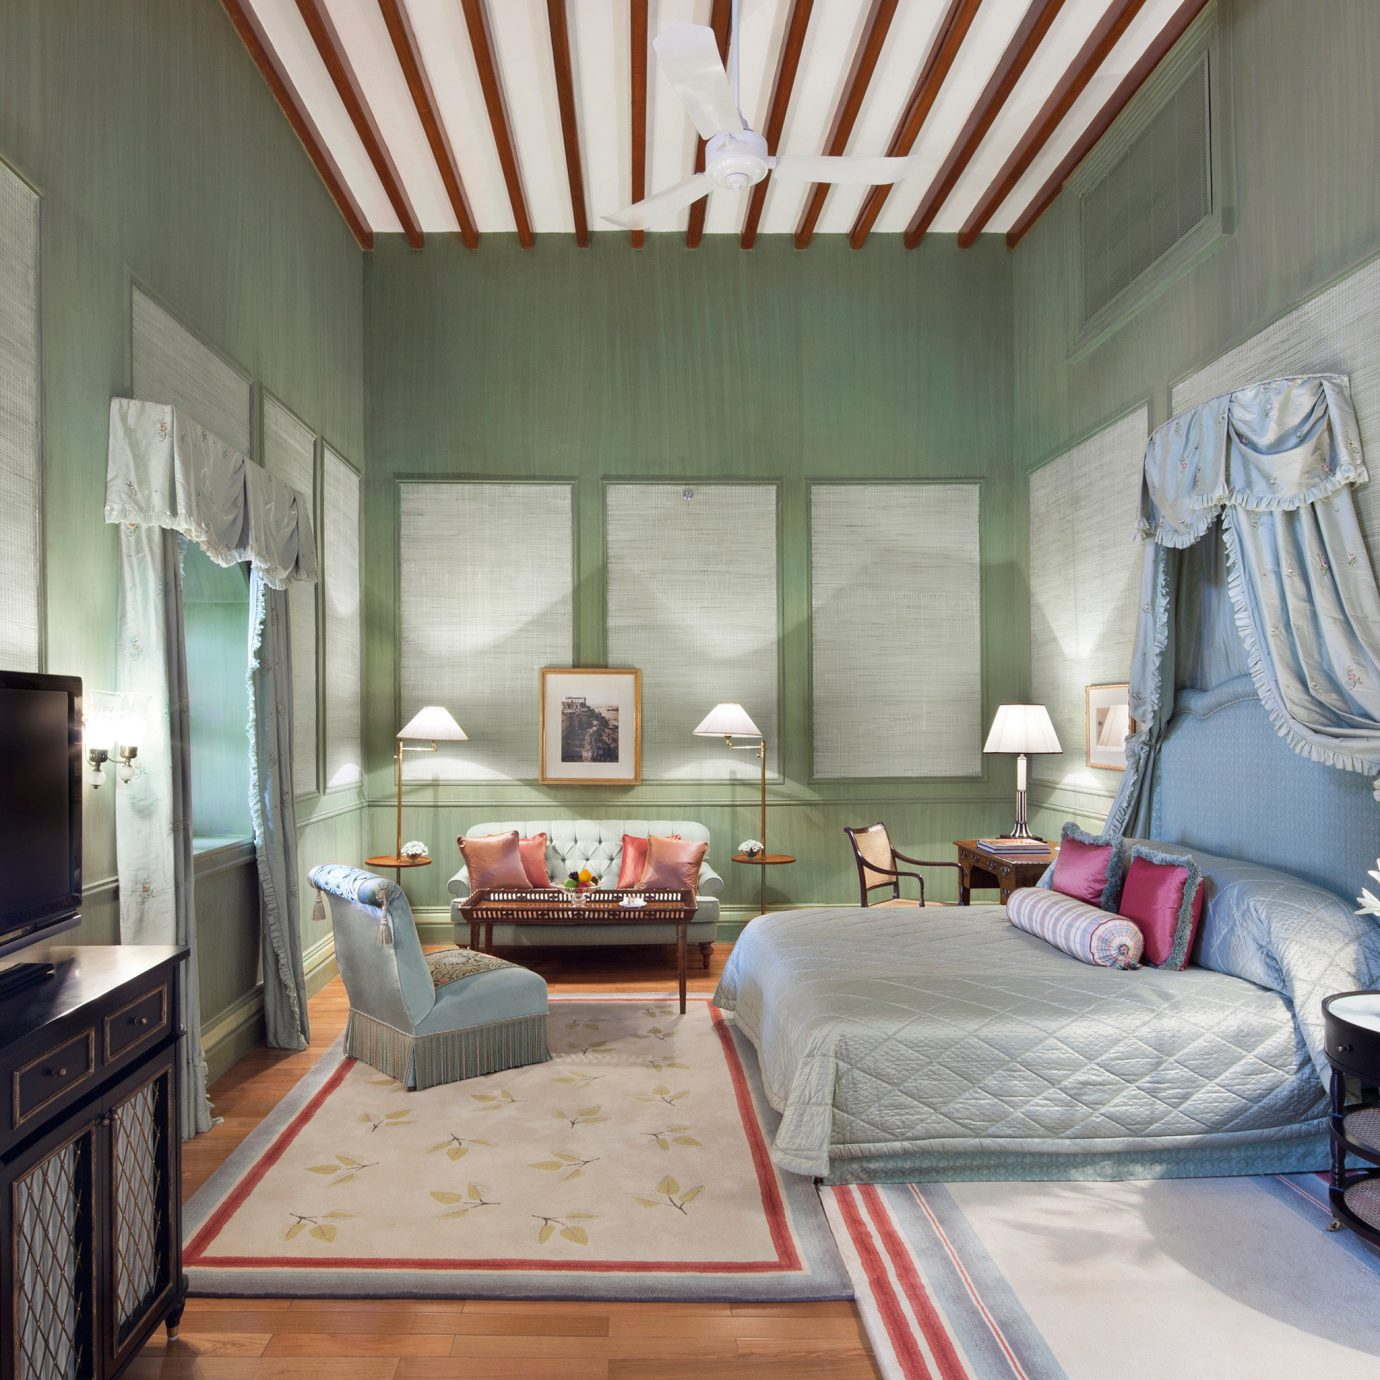 Bedroom Elegant Hotels Luxury living room property home house cottage condominium loft